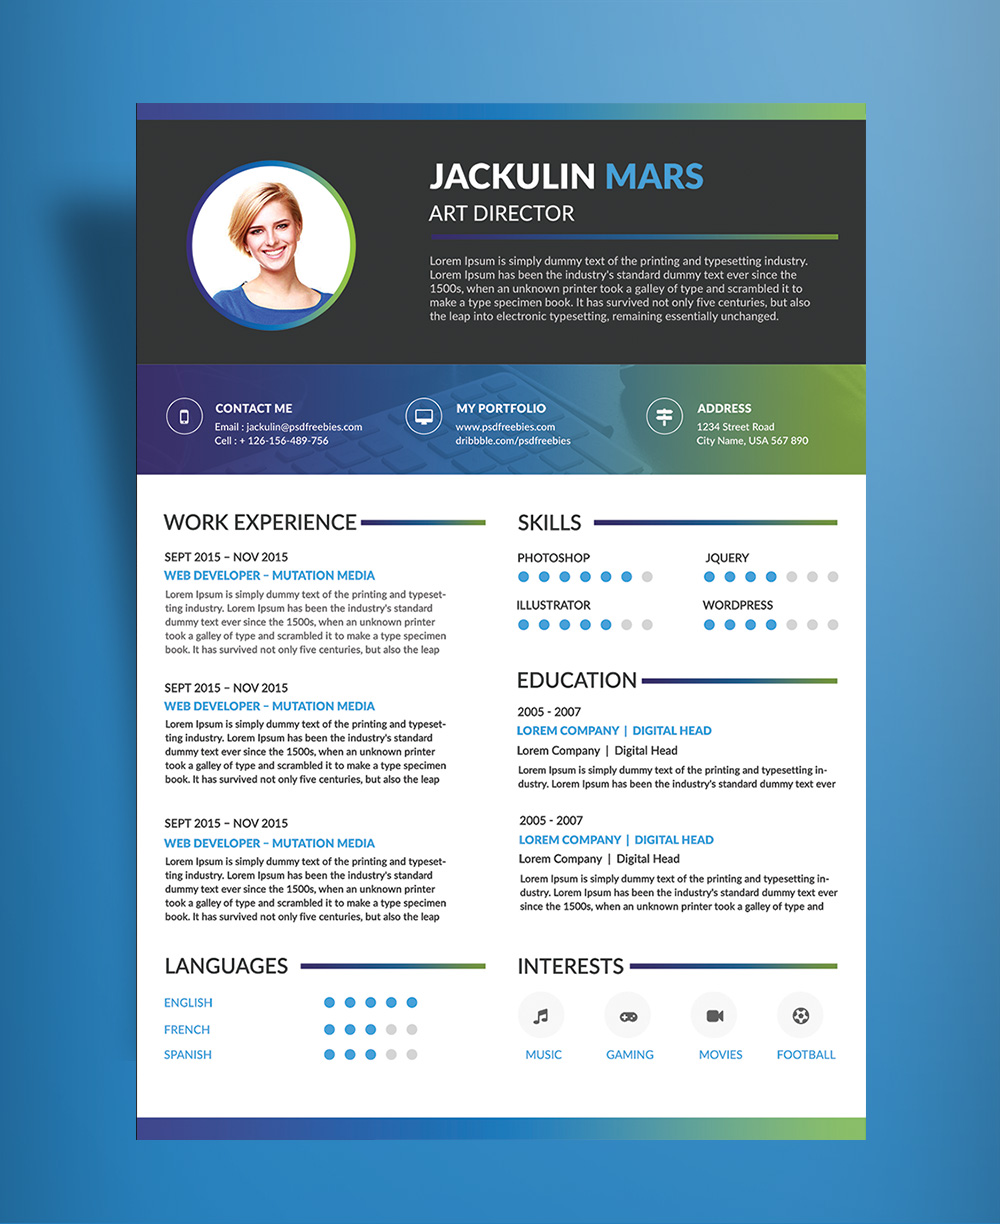 5 Creative Ideas To Make Your Job Application Stand Out Beautiful Resume Cv Design Template Free Psd File Good